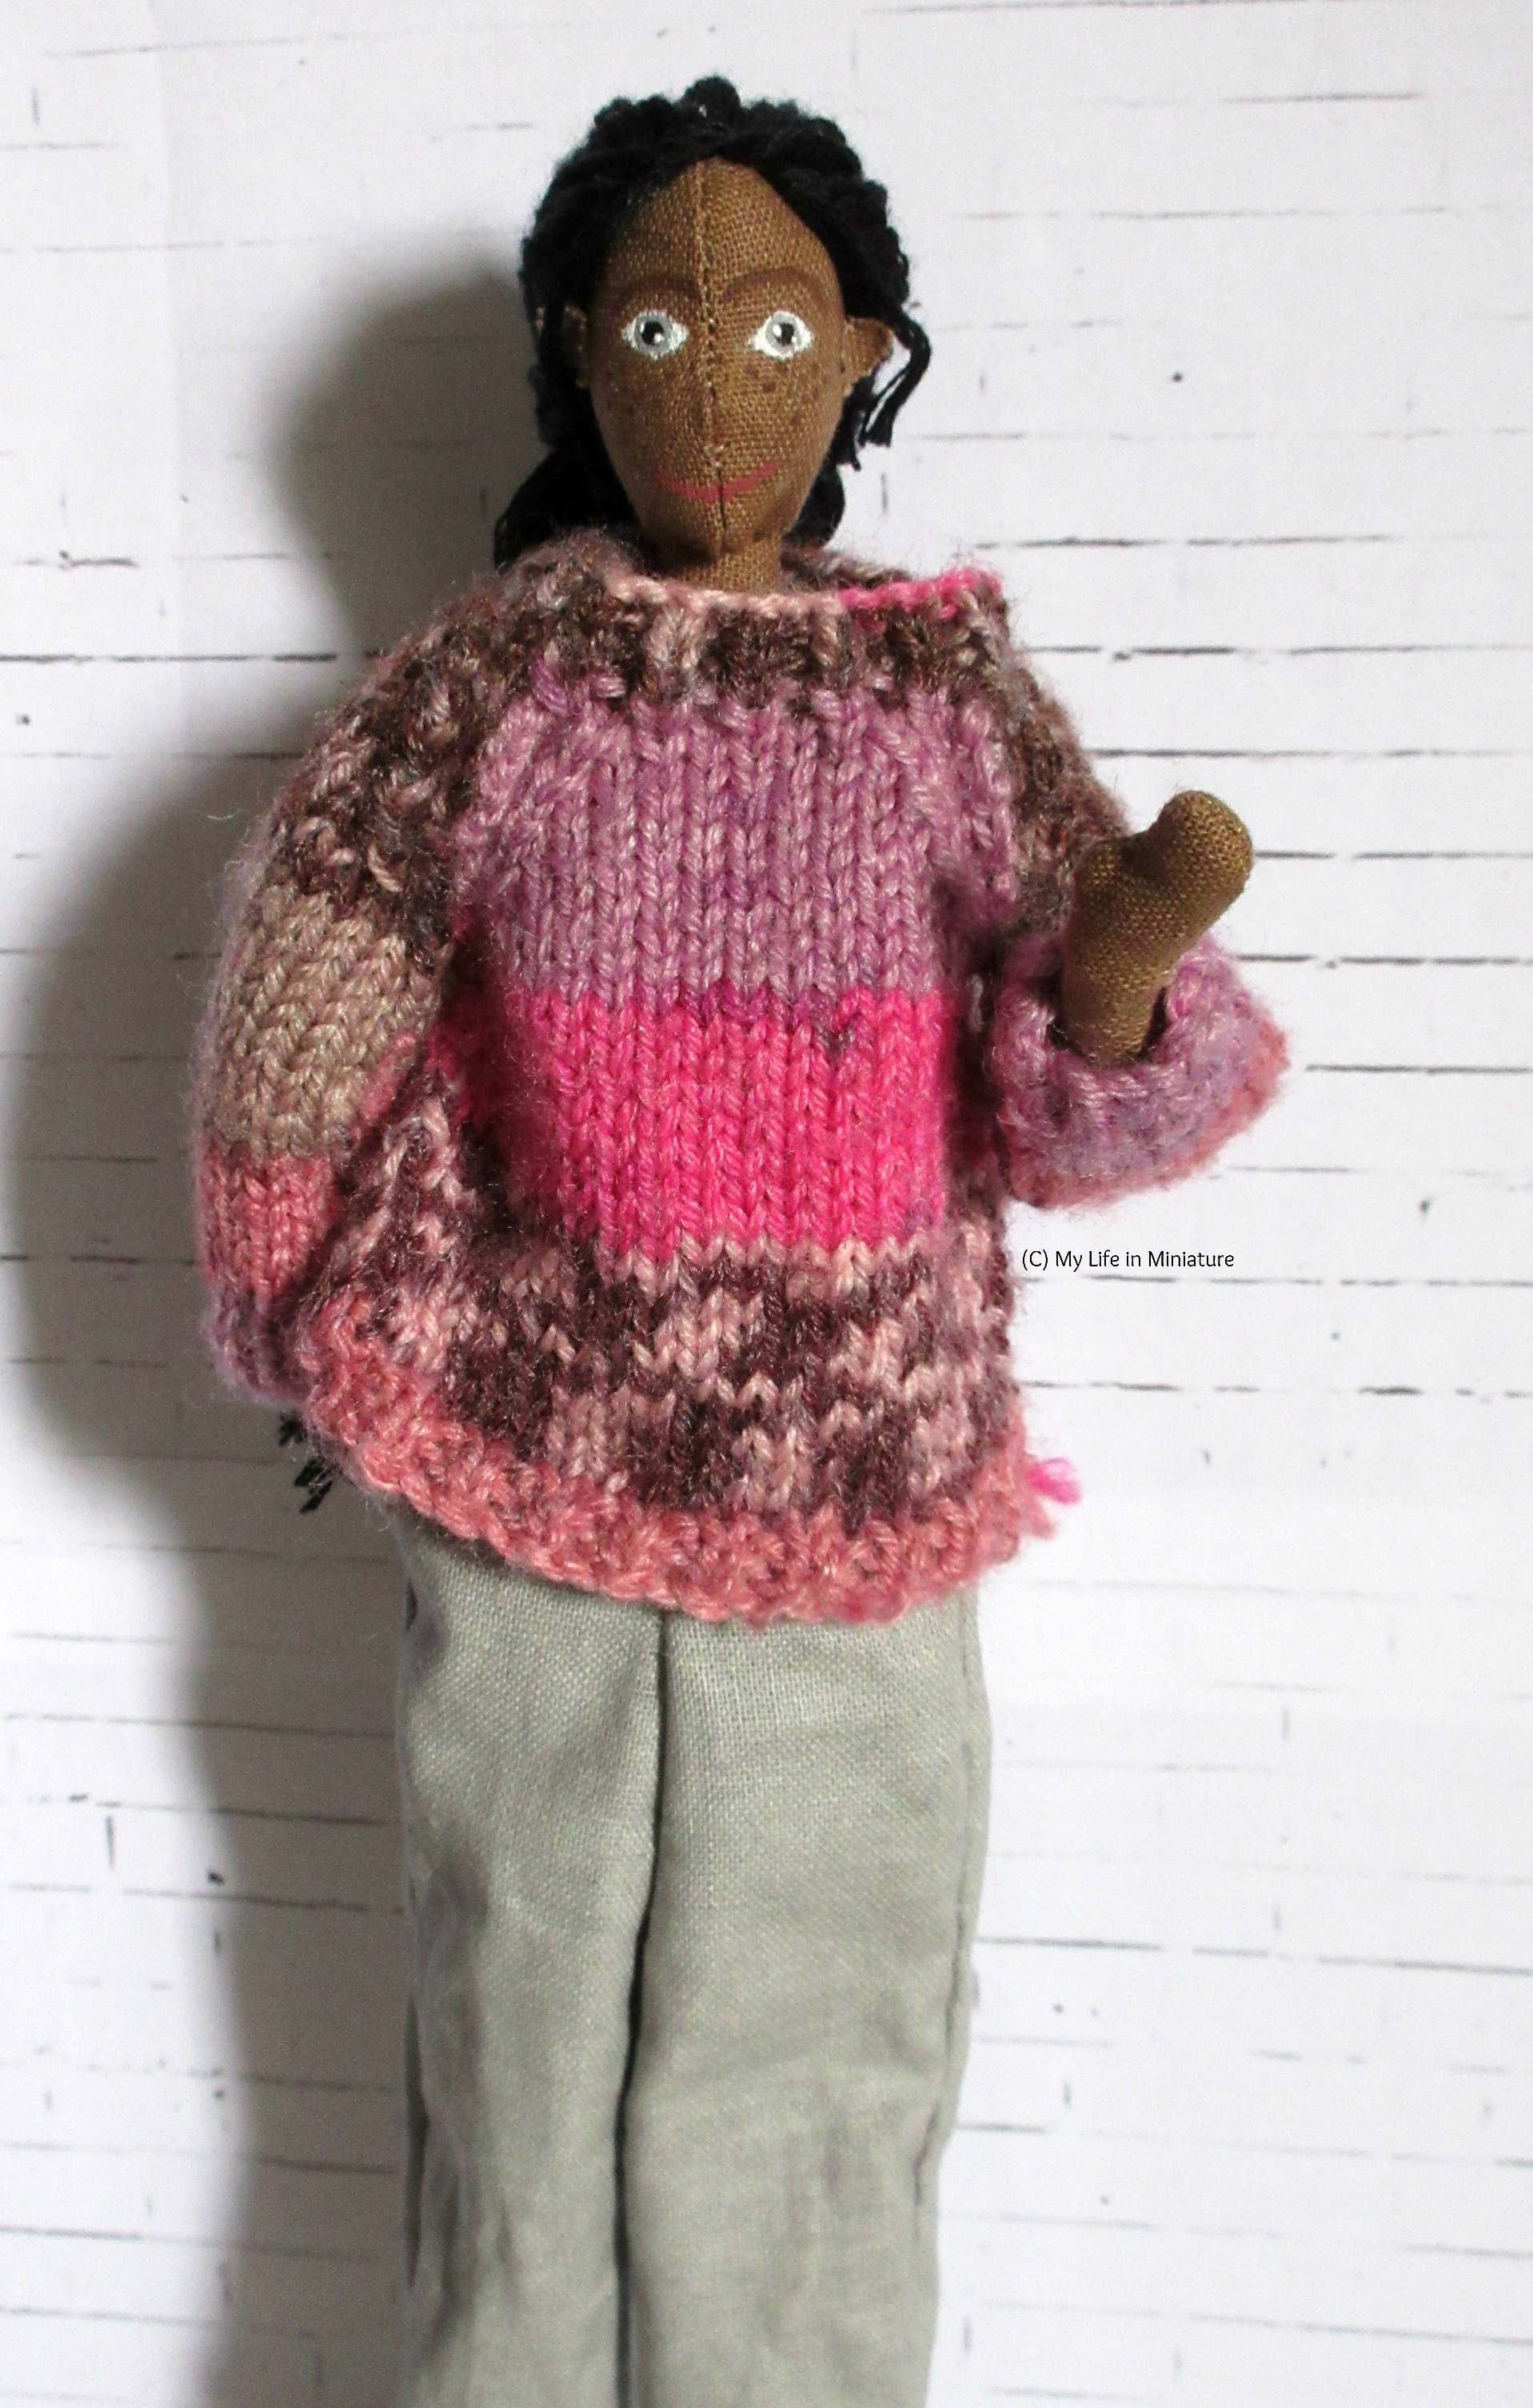 Petra stands against a white brick background. She has brown skin, grey eyes, freckles, and black hair. She wears a pink and purple jumper, loose grey pants, and is waving at the camera.